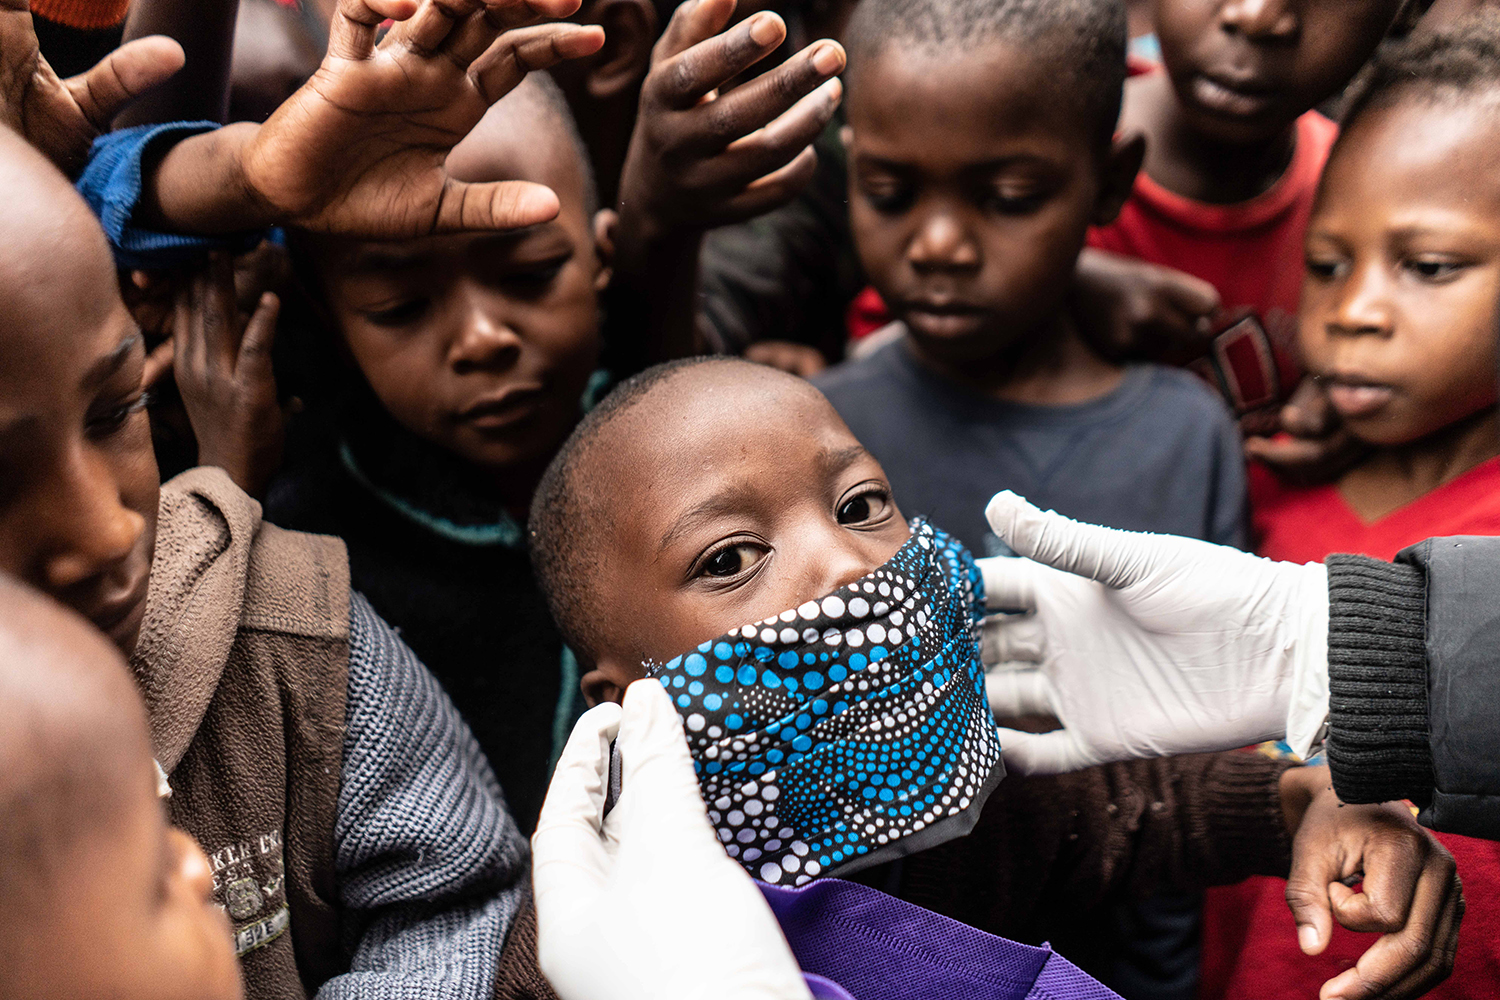 A boy tries on a face mask as food and masks are distributed by members of the Coalition for Grassroots Human Rights Defenders in Nairobi, Kenya, on April 25. FREDRIK LERNERYD/AFP via Getty Images